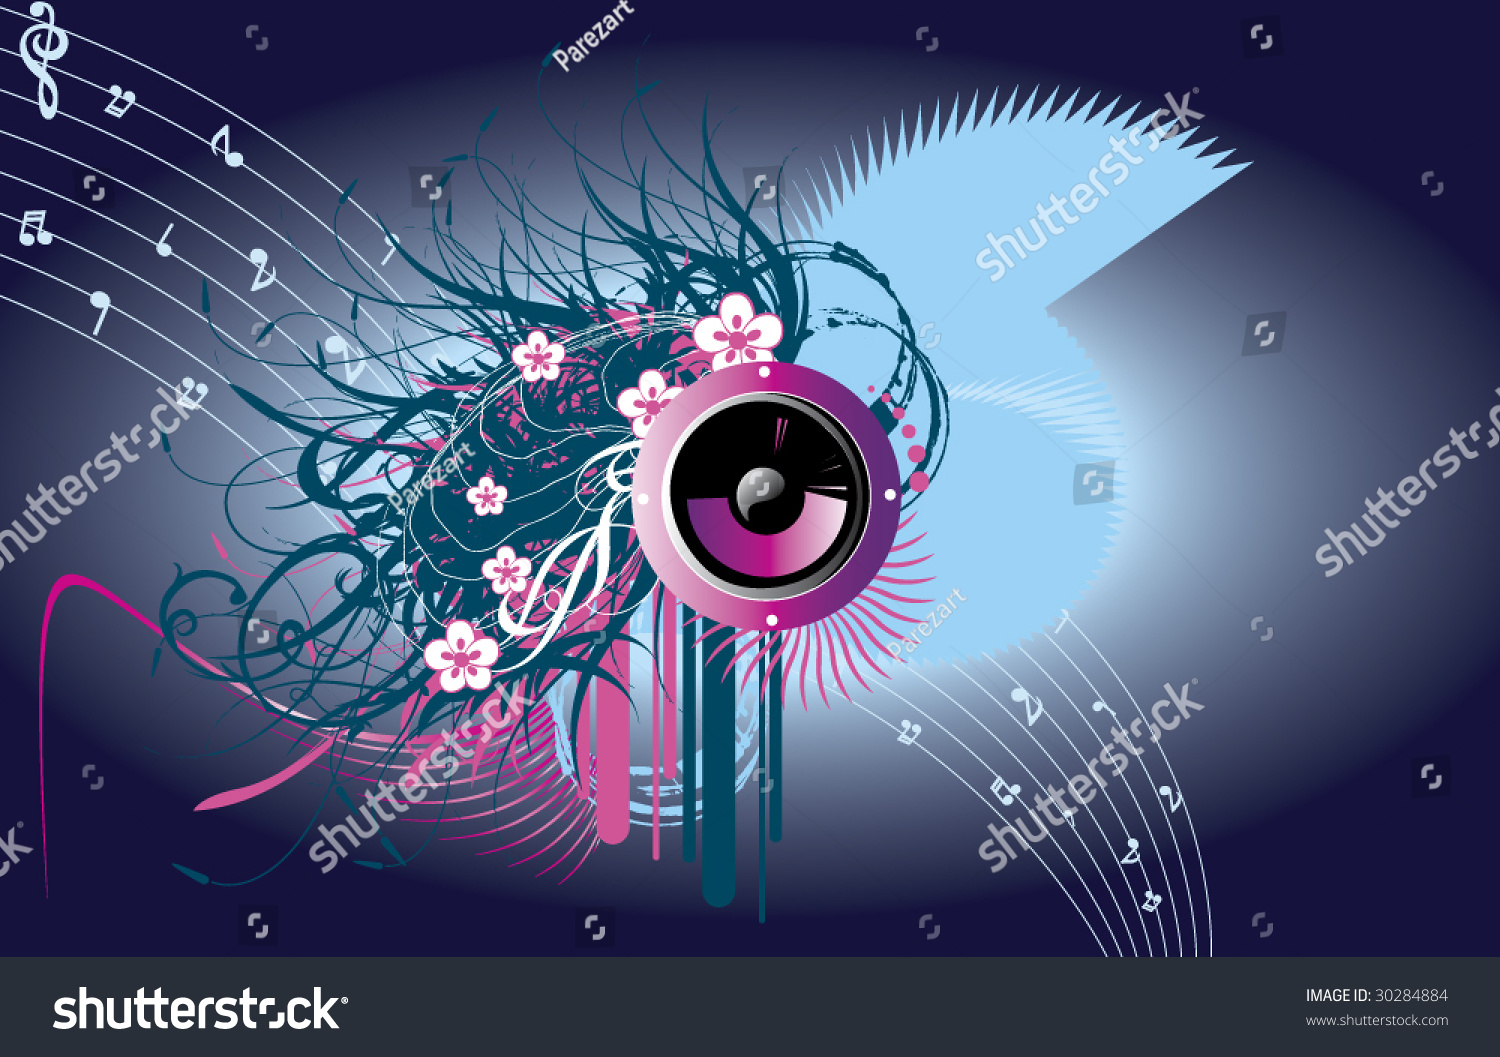 Music Eye Wallpaper Stock Vector Royalty Free 30284884 Shutterstock